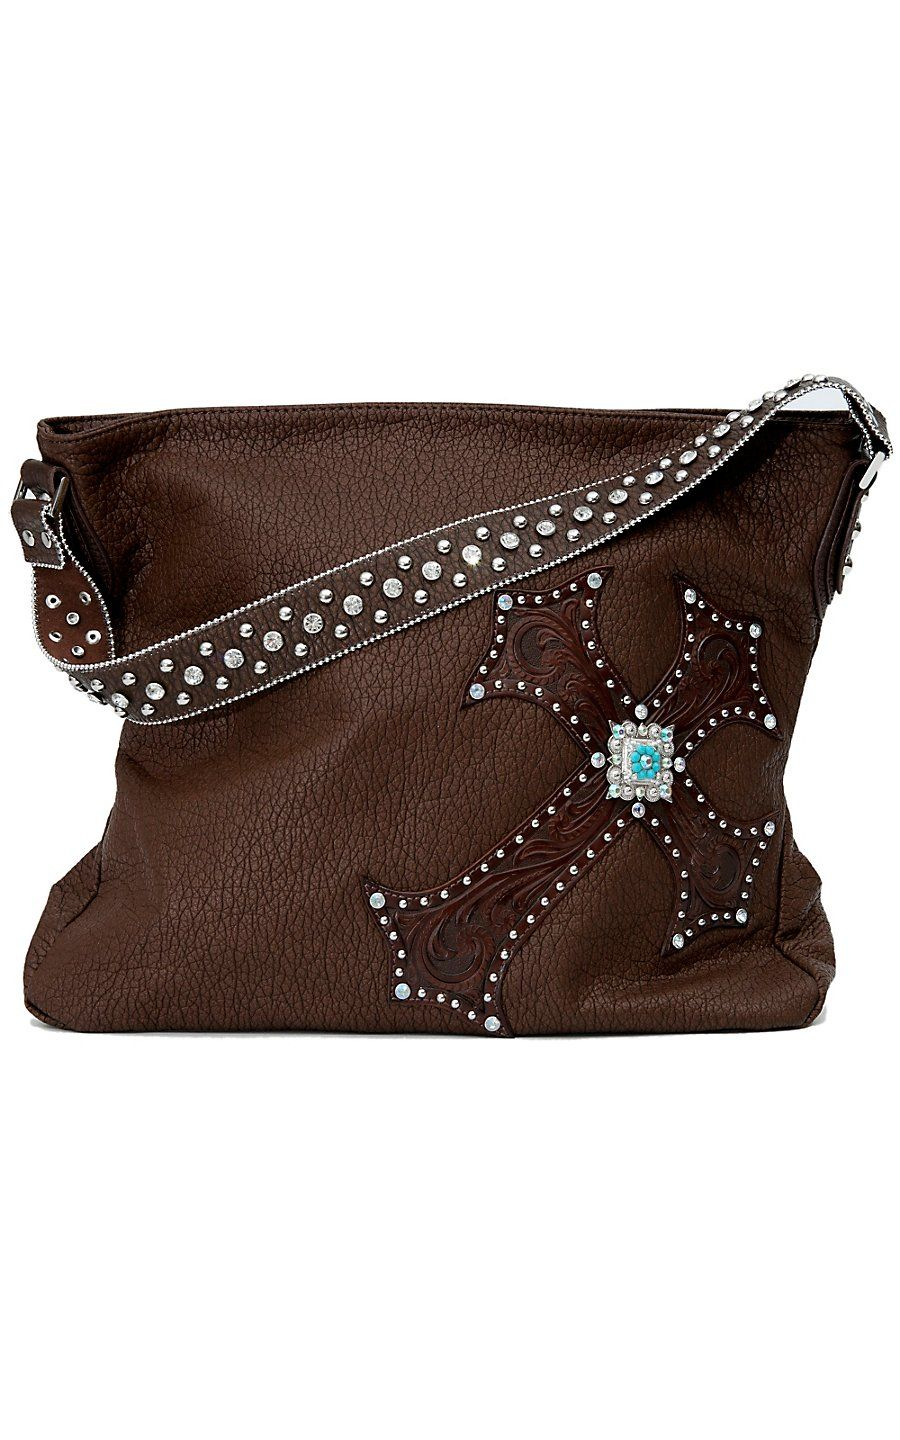 f19b93afc7e1 M&F® Blazin Roxx™ Brown Faux Leather w/ Turquoise Accented Cross Purse |  Cavender's